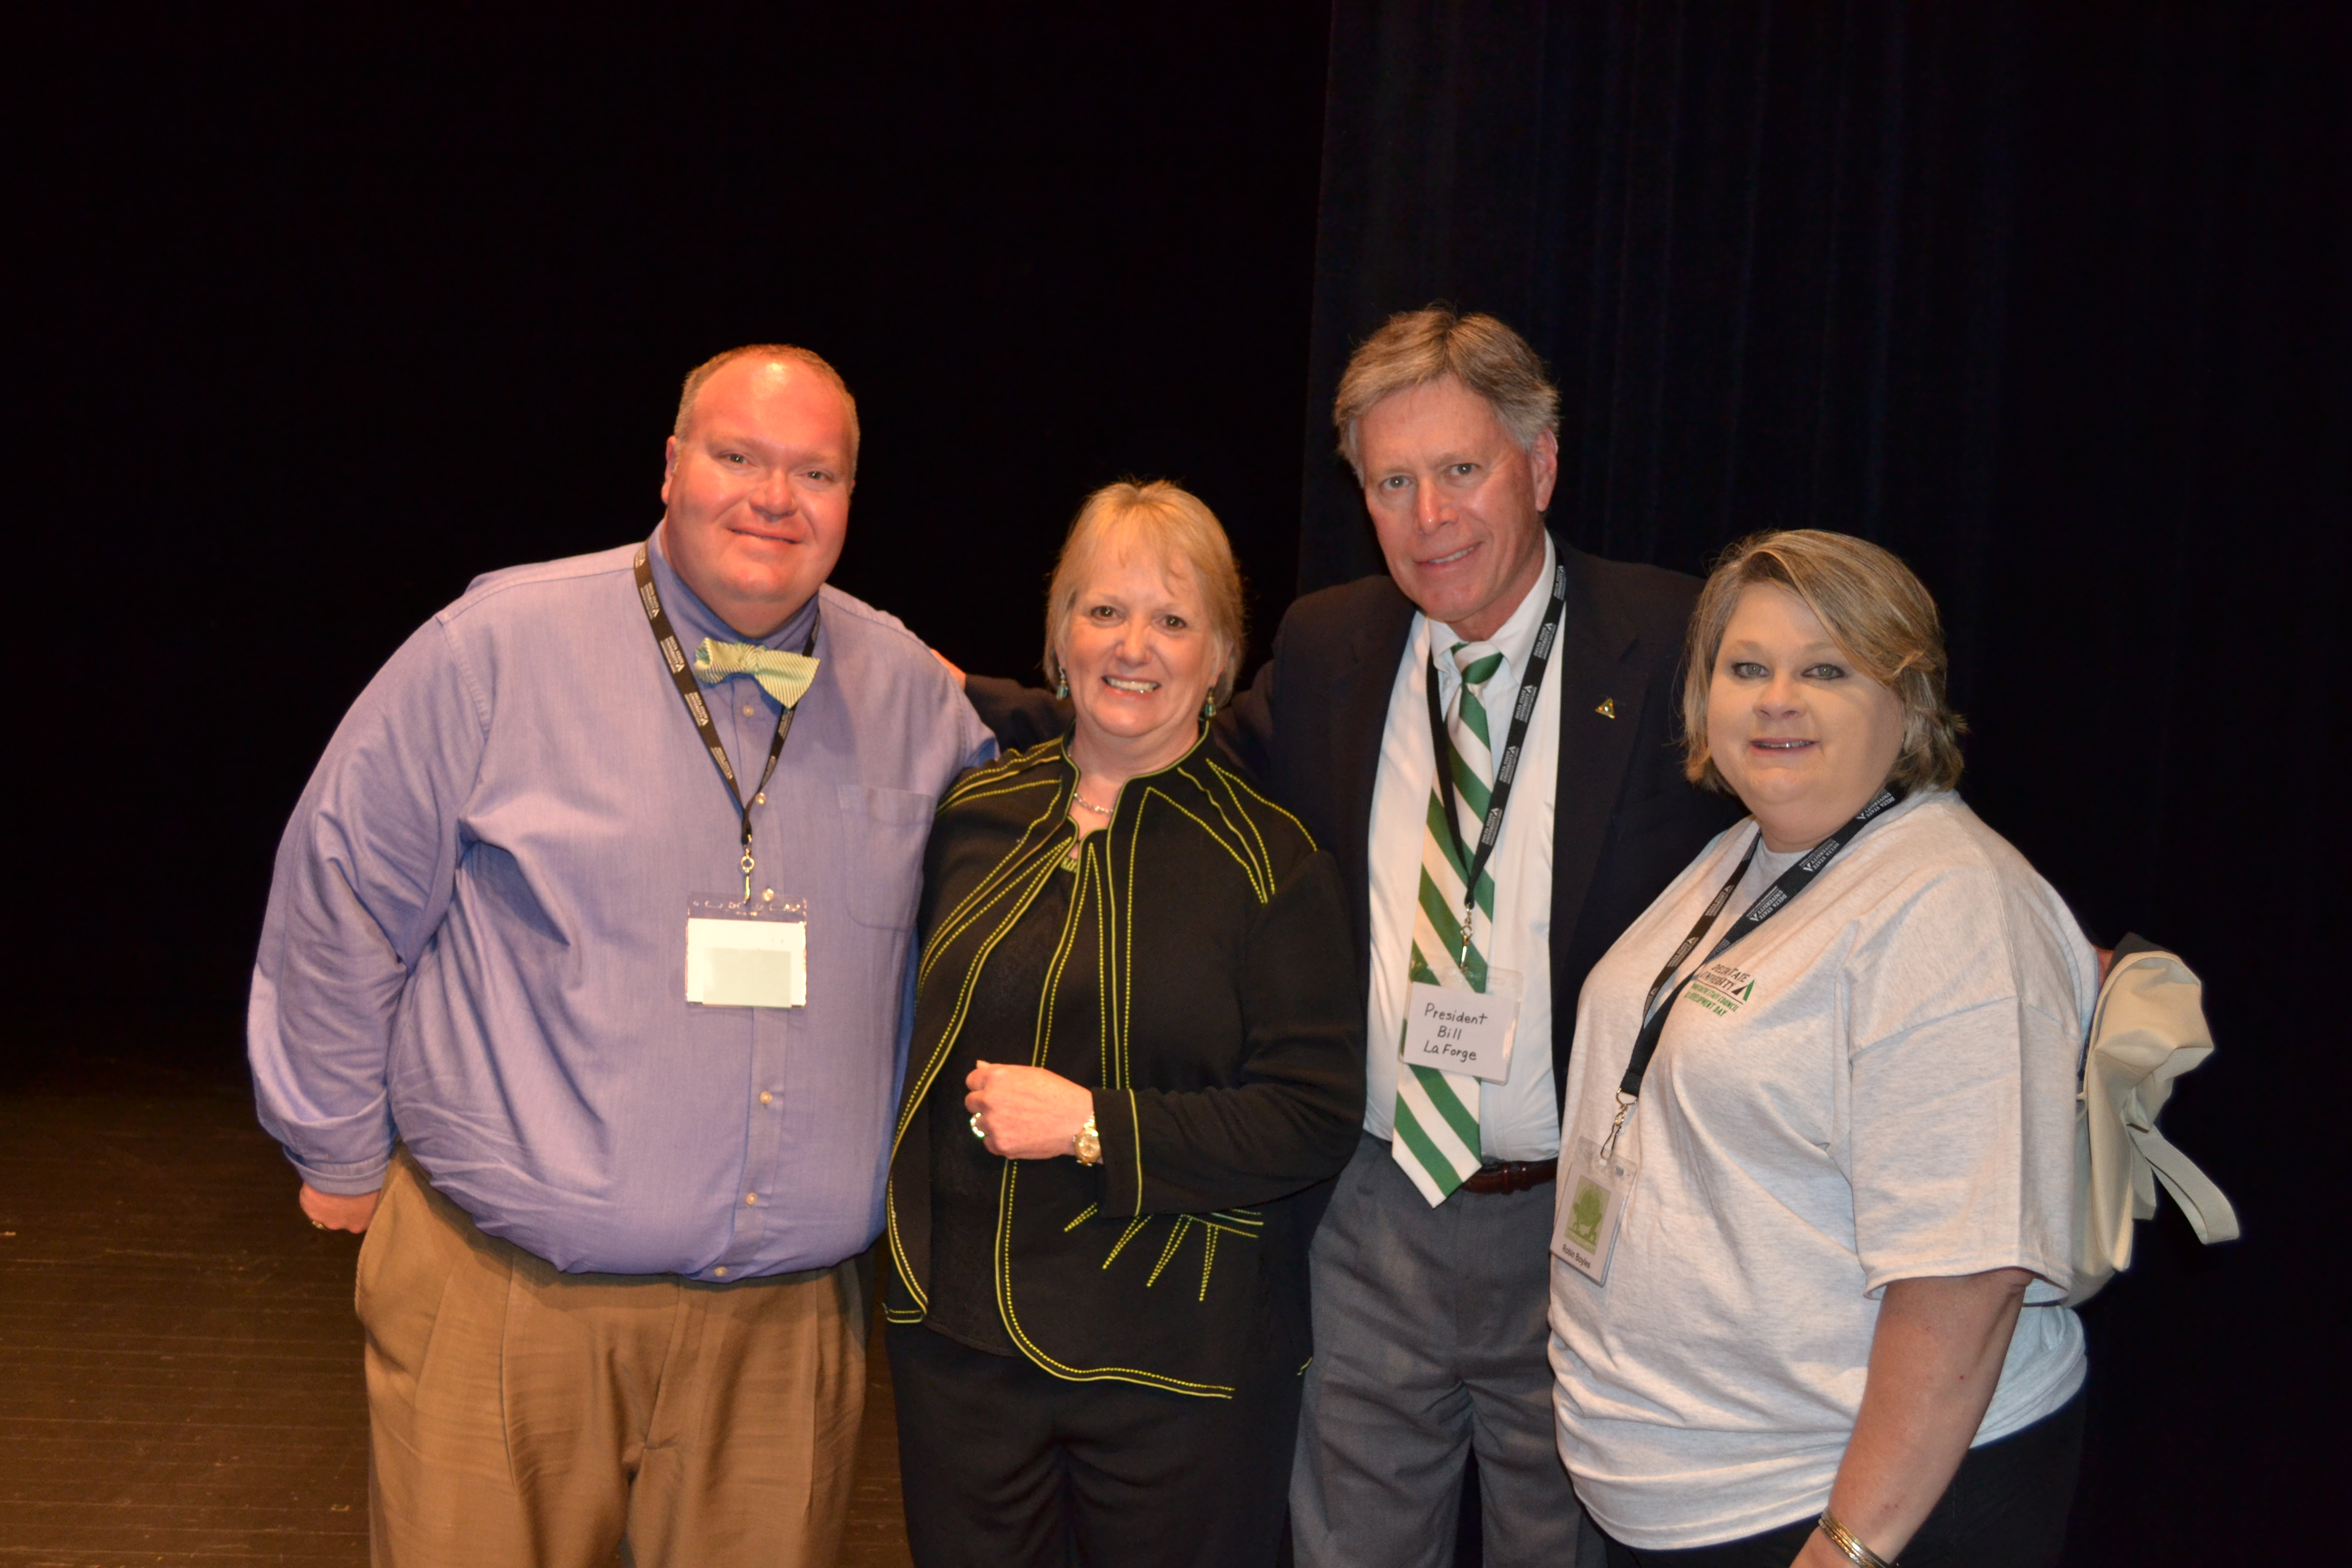 Photo: President of Delta State Staff Council Matt Jones, guest speaker Amy D. Whitten, J.D., President William N. Laforge and Chair Elect for Staff Council, Robin Boyles, gather for a photo at Staff Development Day.